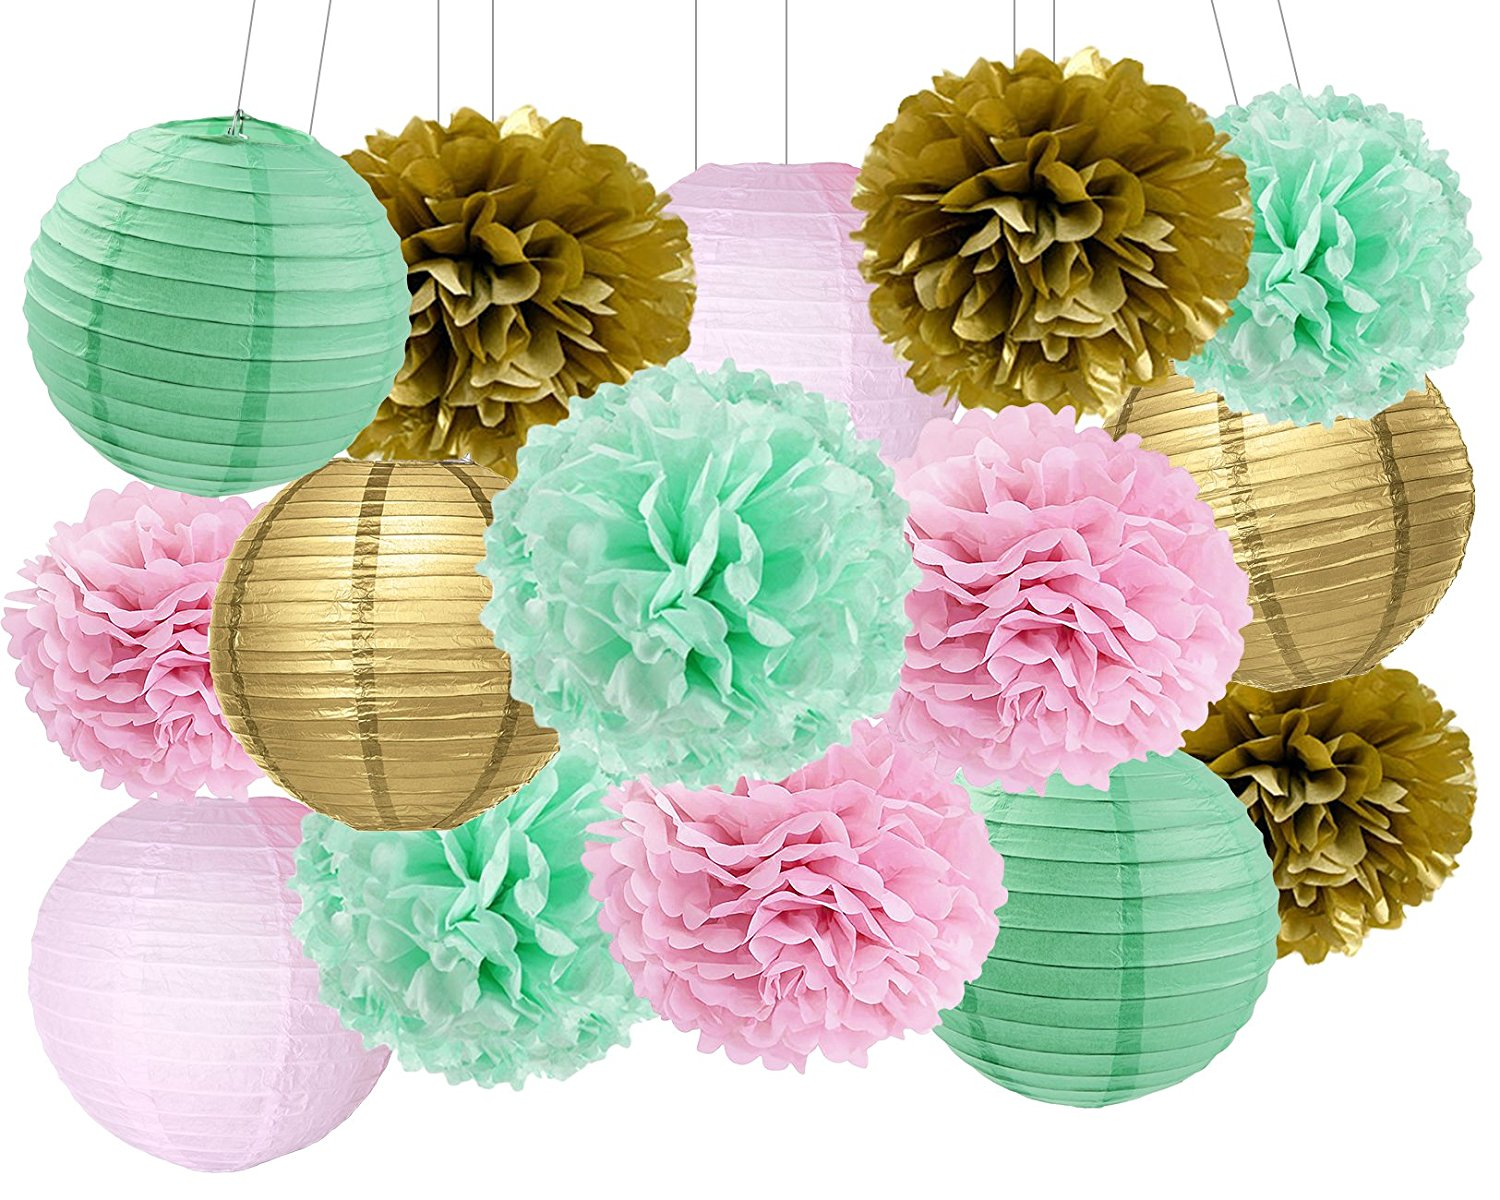 Us 16 98 15pcs Mint Pink Gold Party Hanging Paper Ball Pom Poms Diy Wedding Flower Girl Baby Shower Birthday Bridal Shower Party Supply In Party Diy